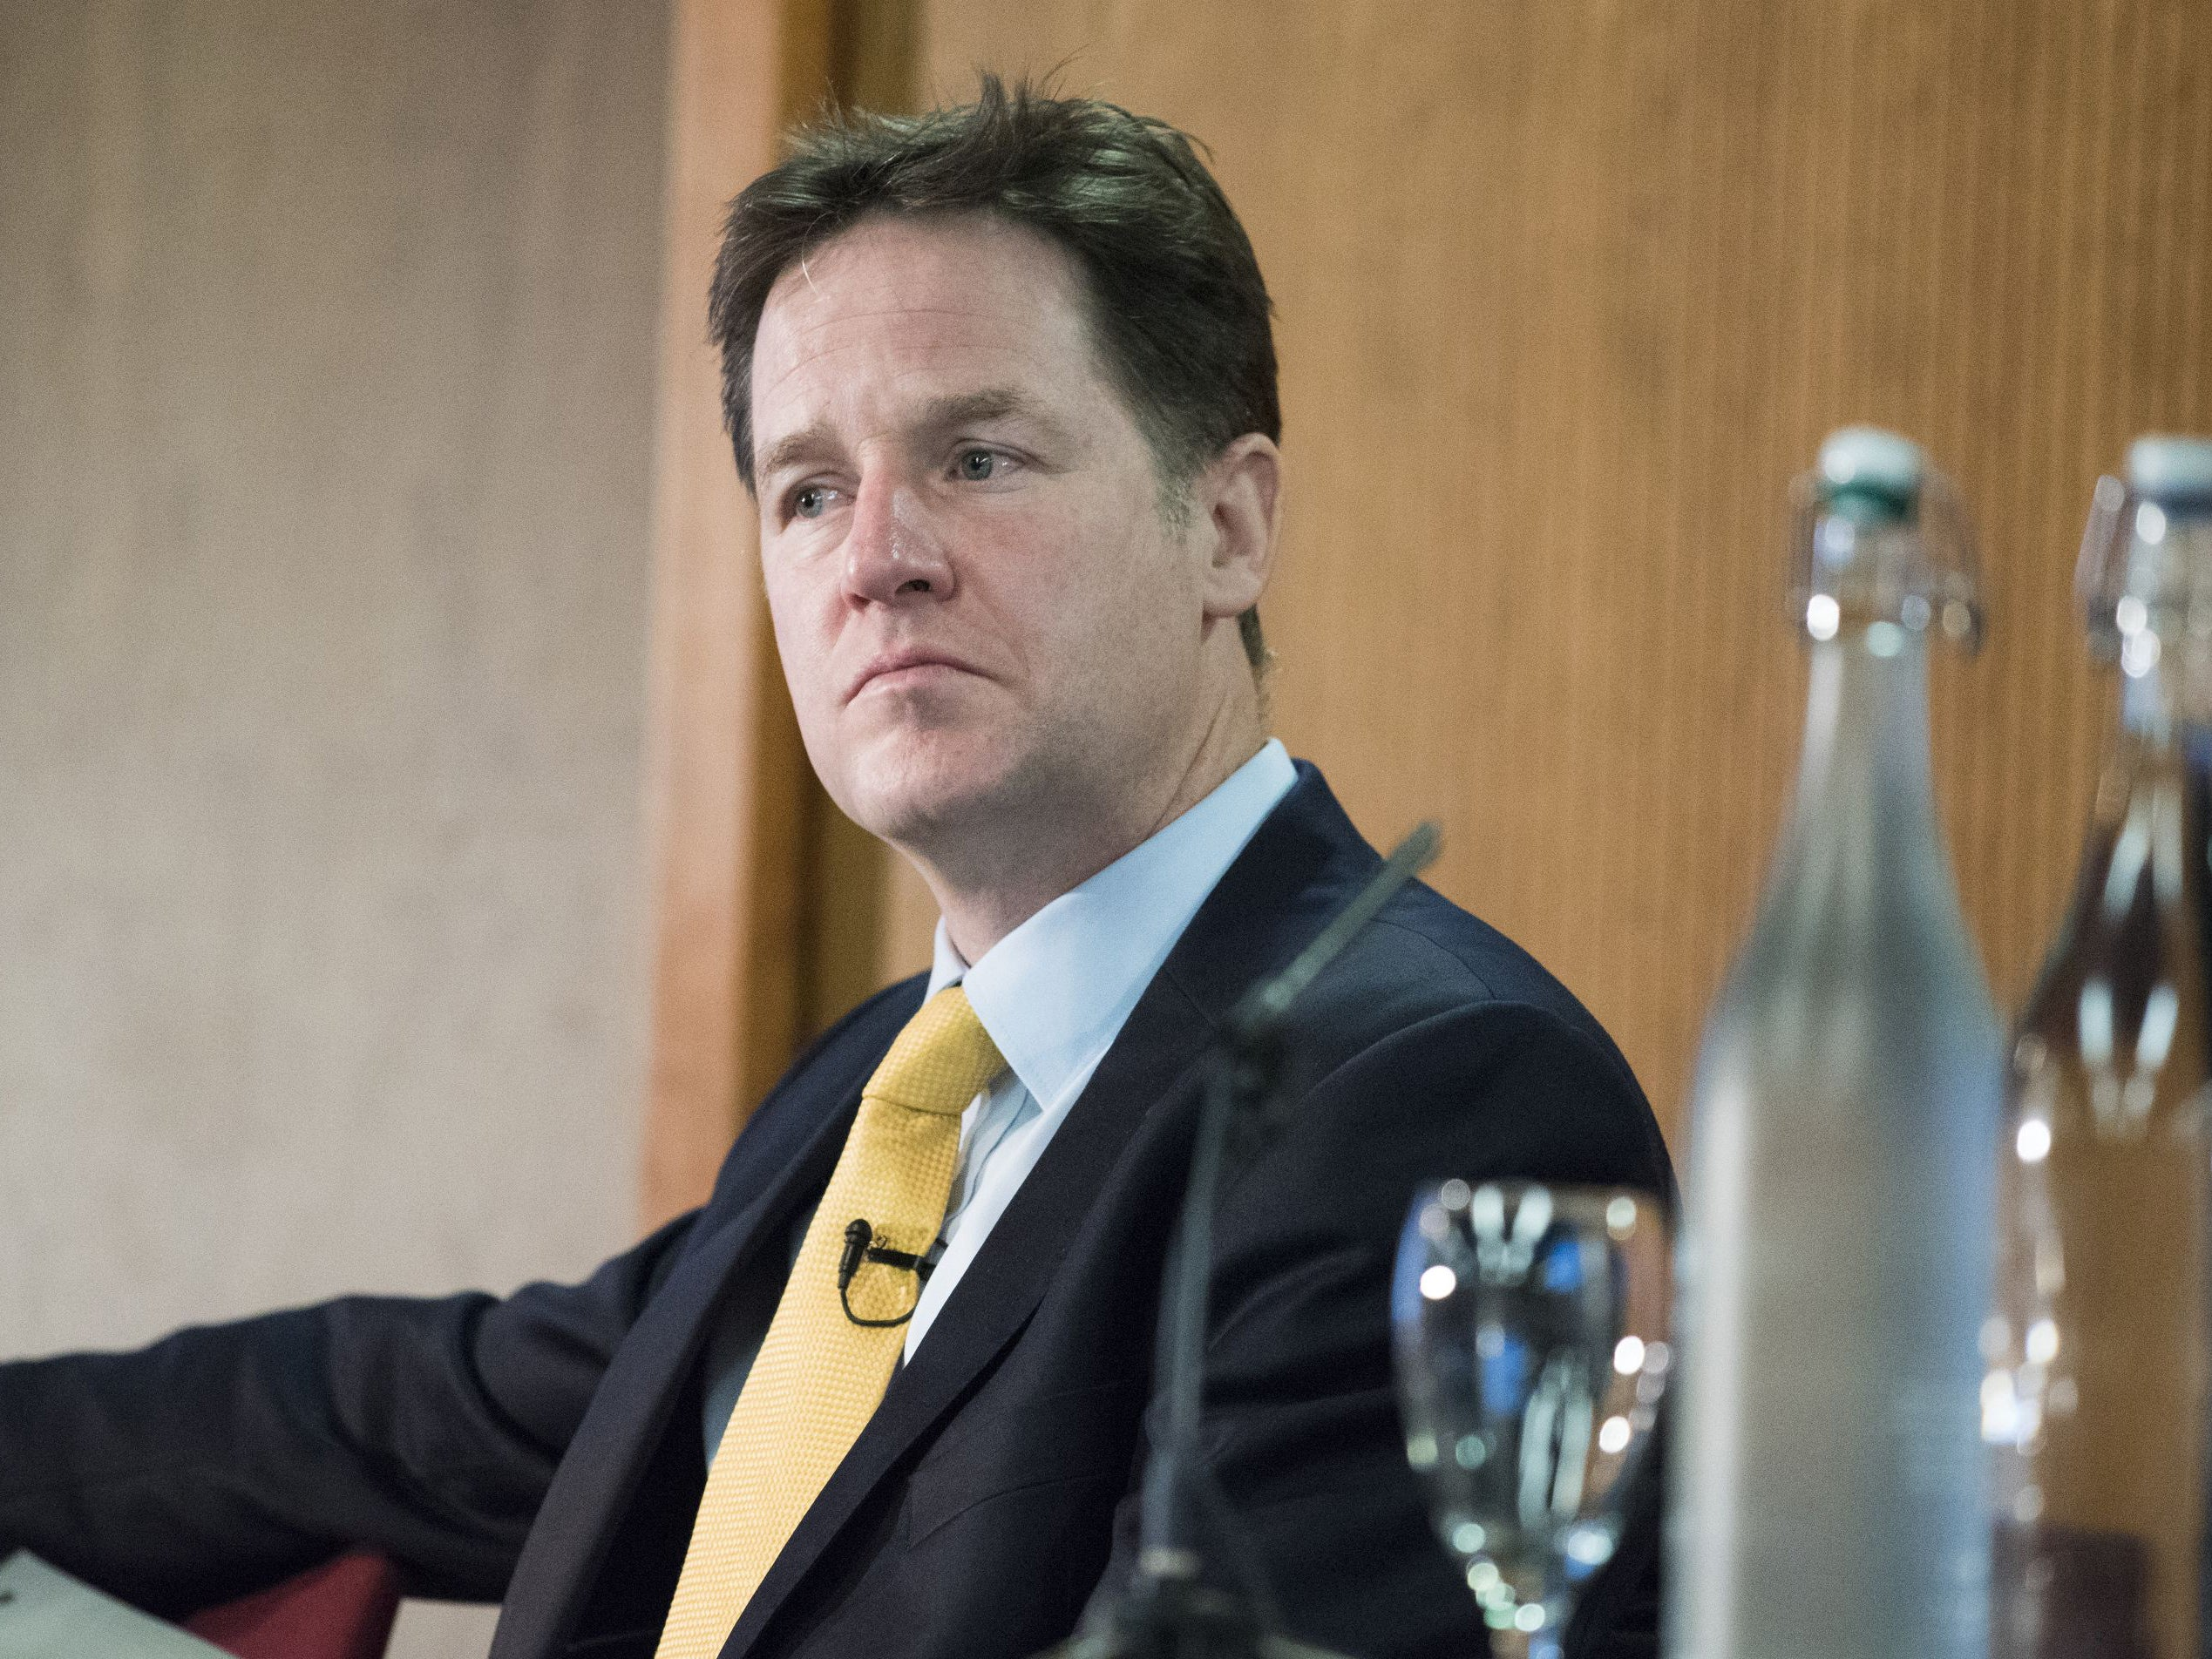 Nick Clegg answers your mental health questions